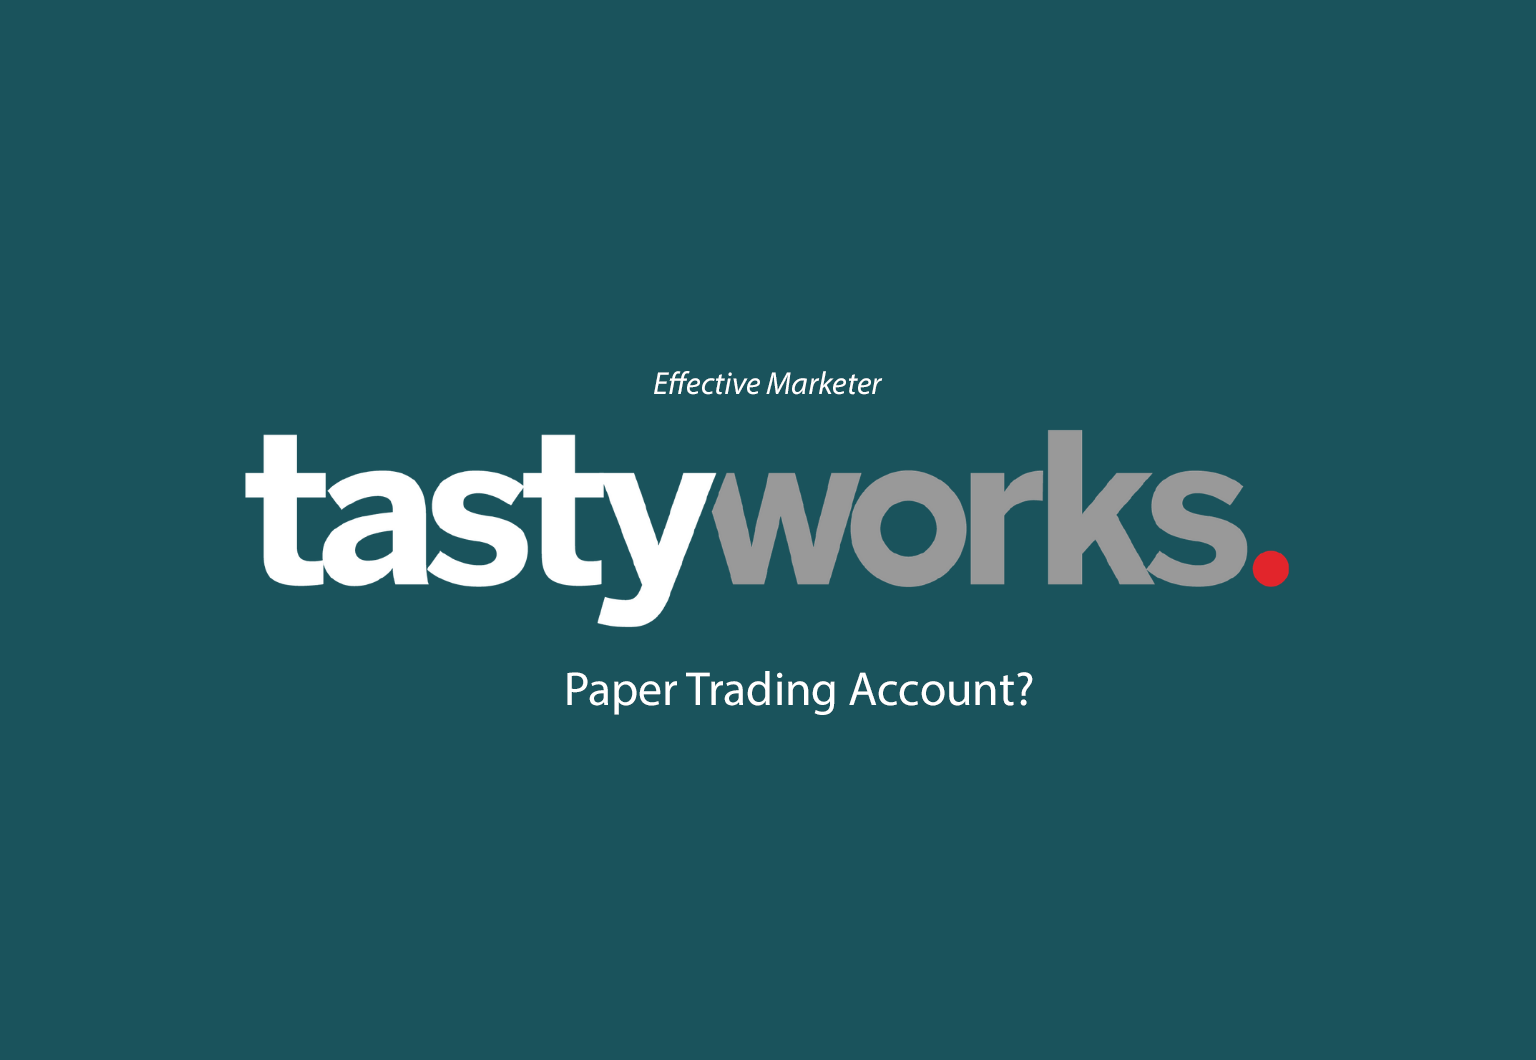 Does Tastywork Have Paper Trading Account?